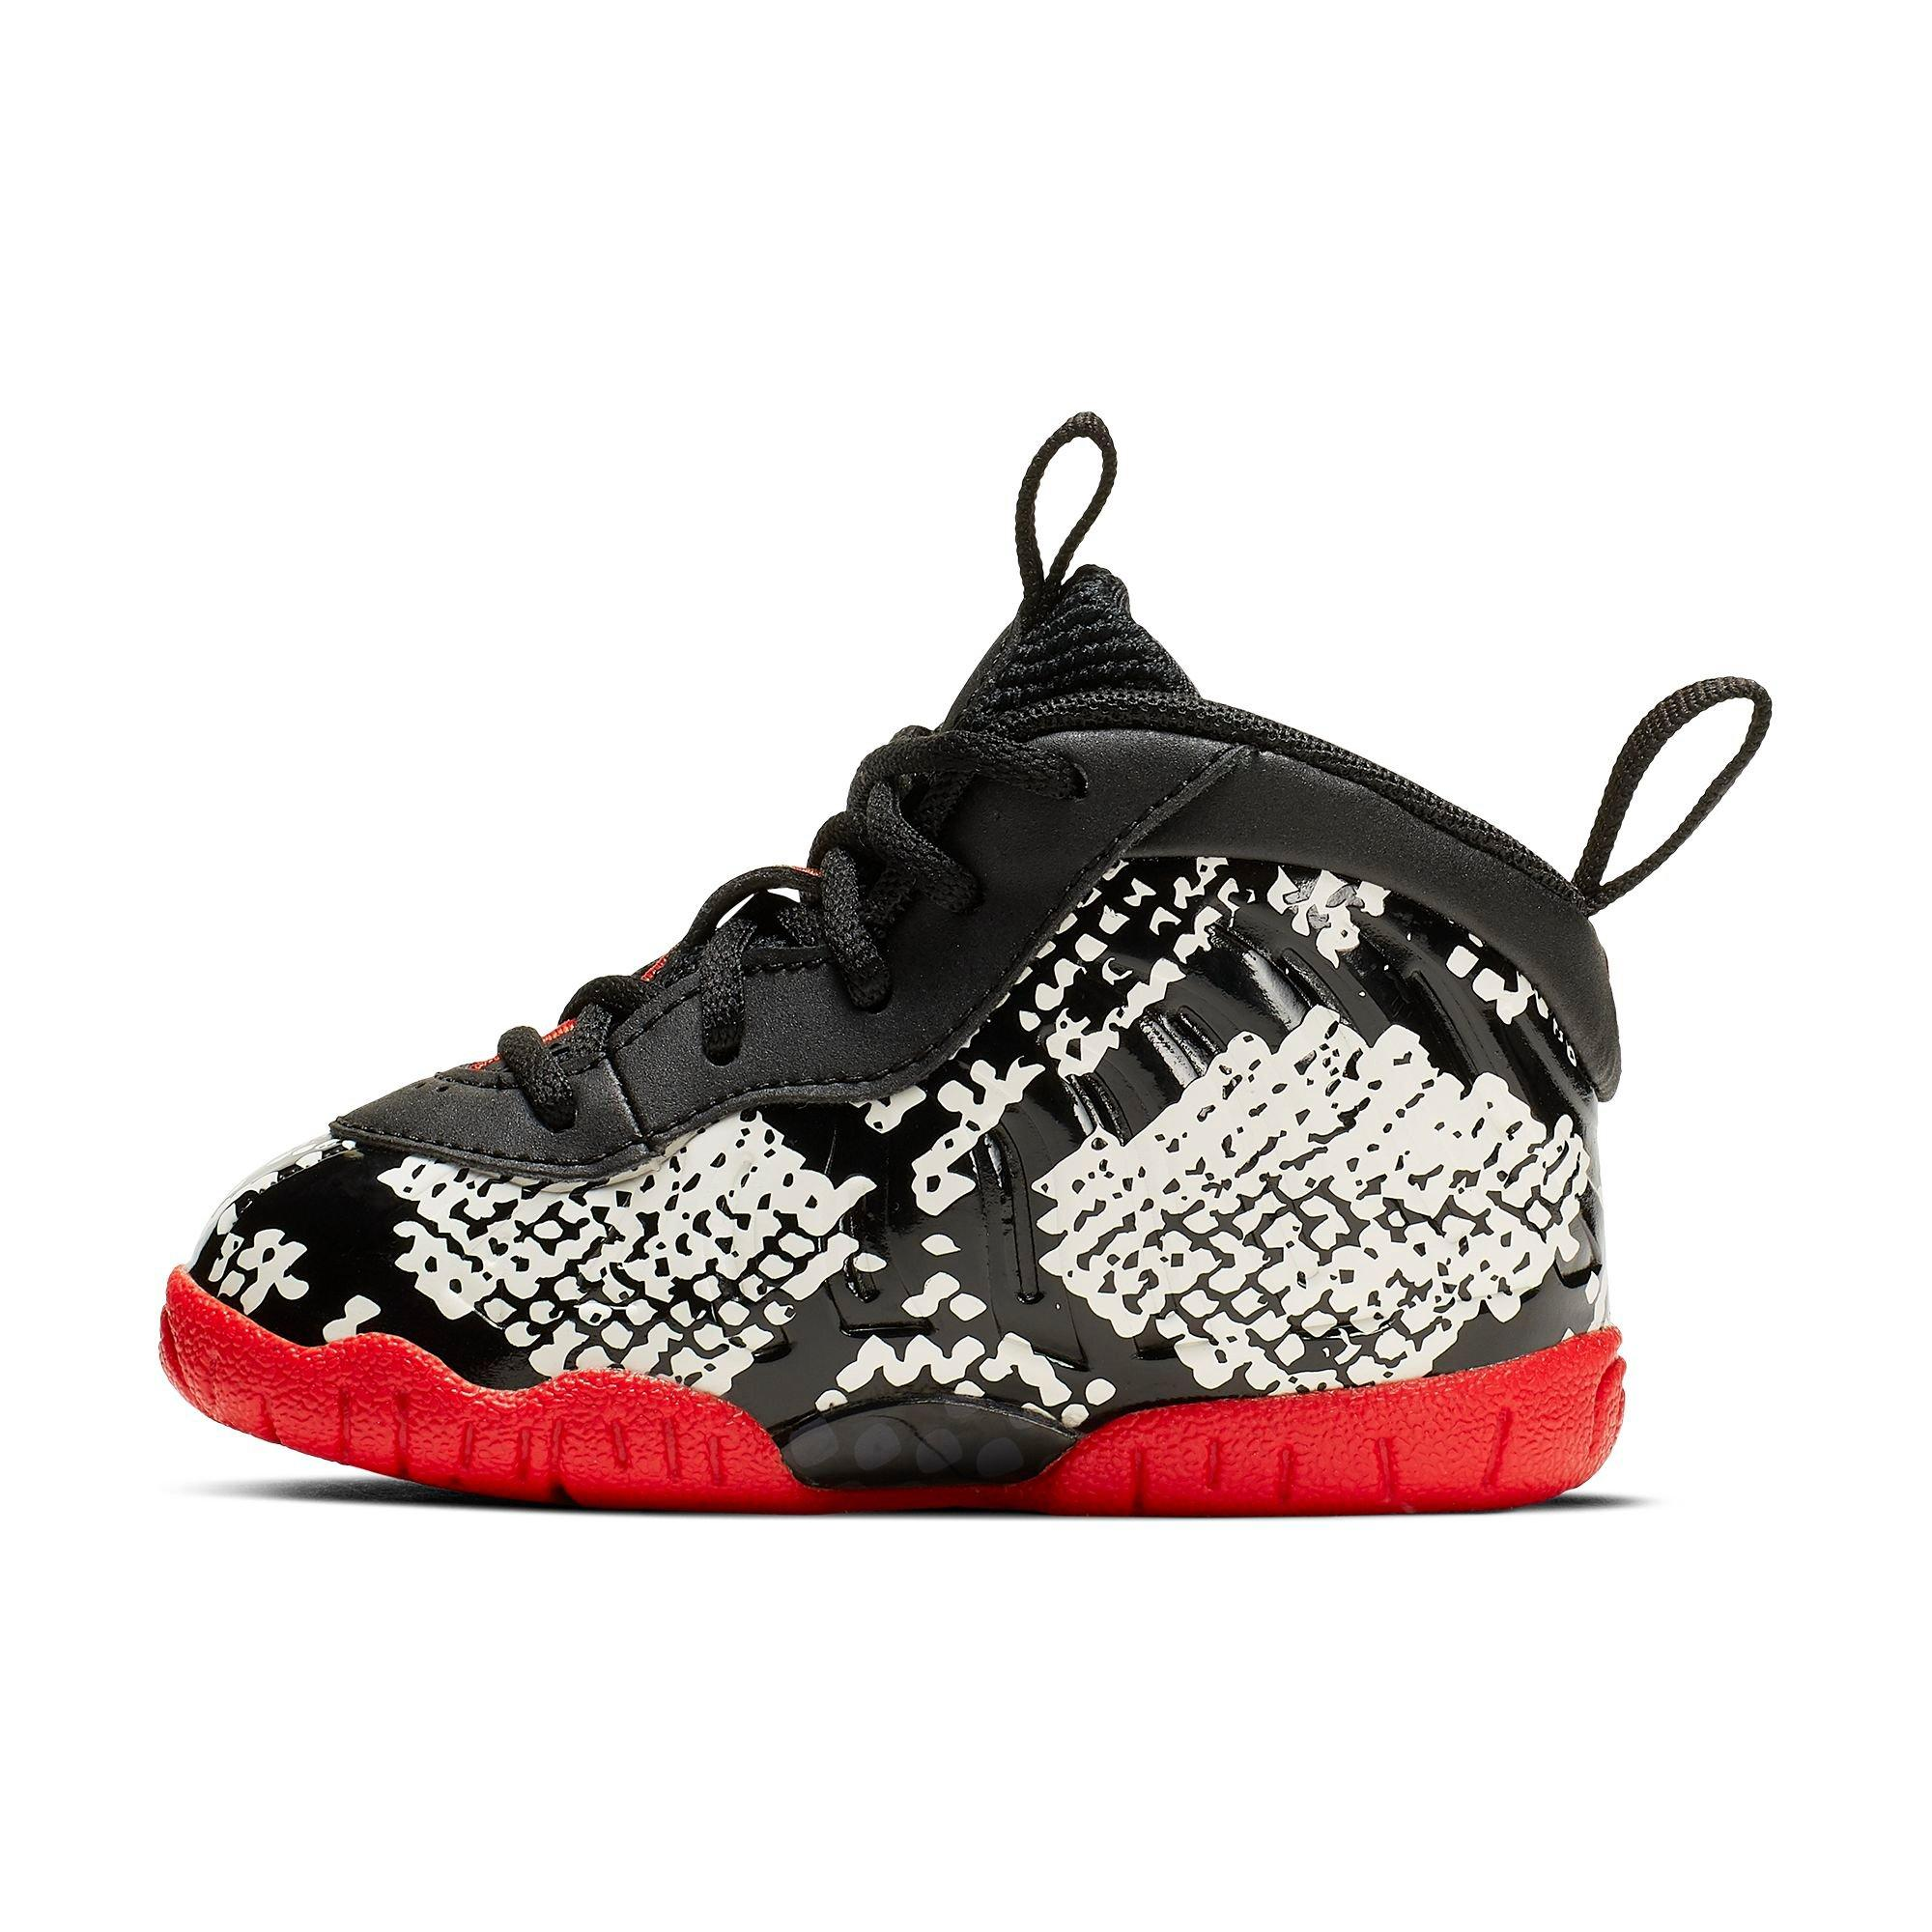 Now Available: Women s Nike Air Foamposite One Chrome ...